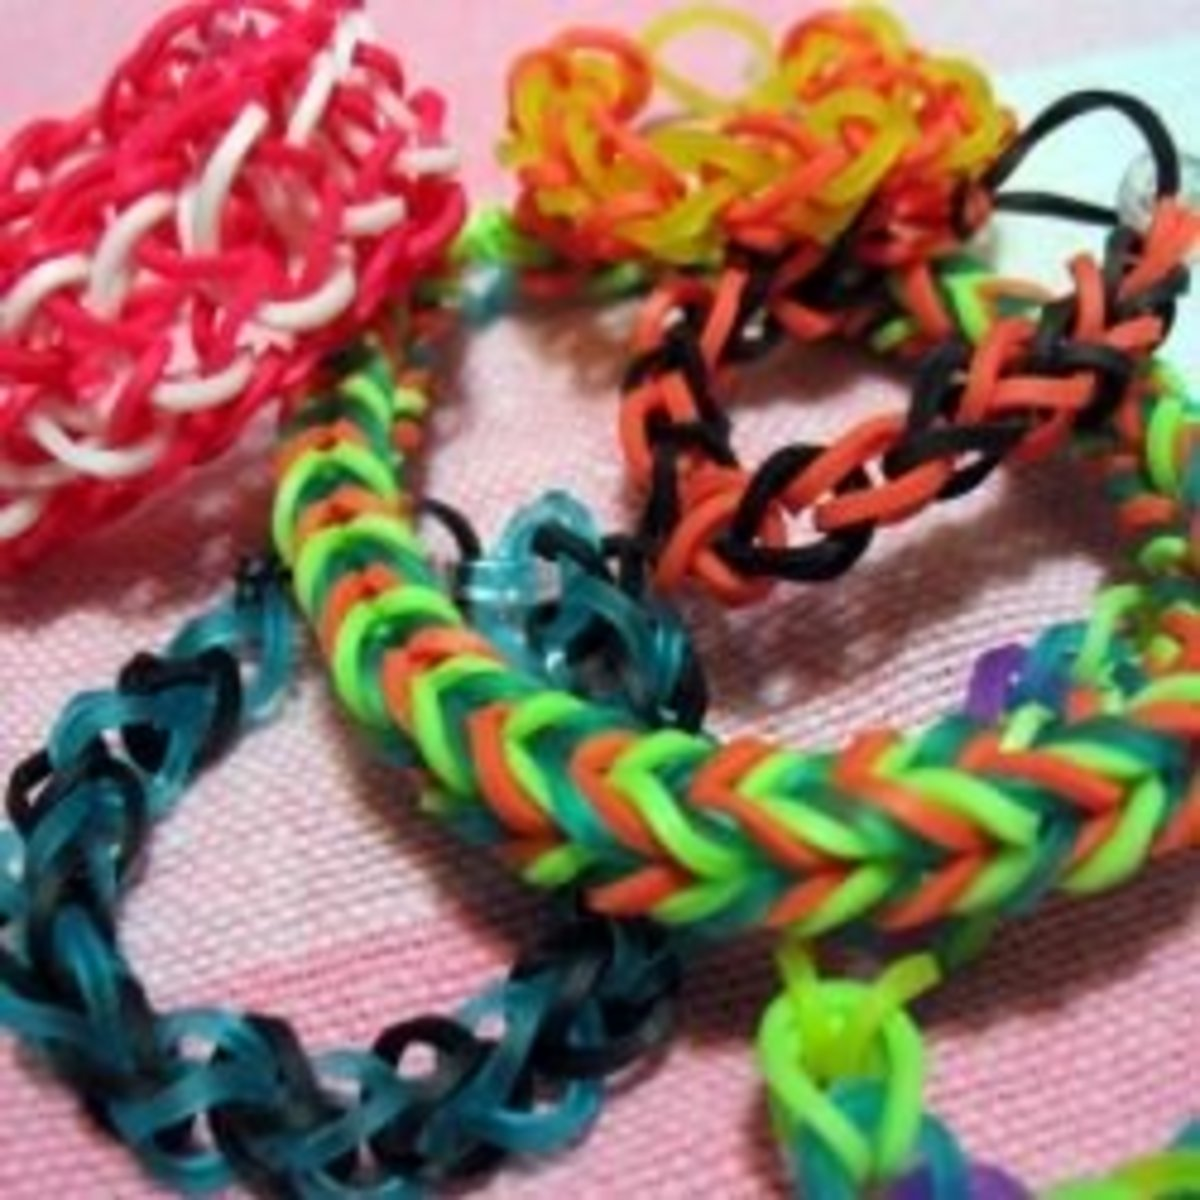 There Are Several Rubber Band Bracelet Designs That Can Be Easily Made Without Using The Loom